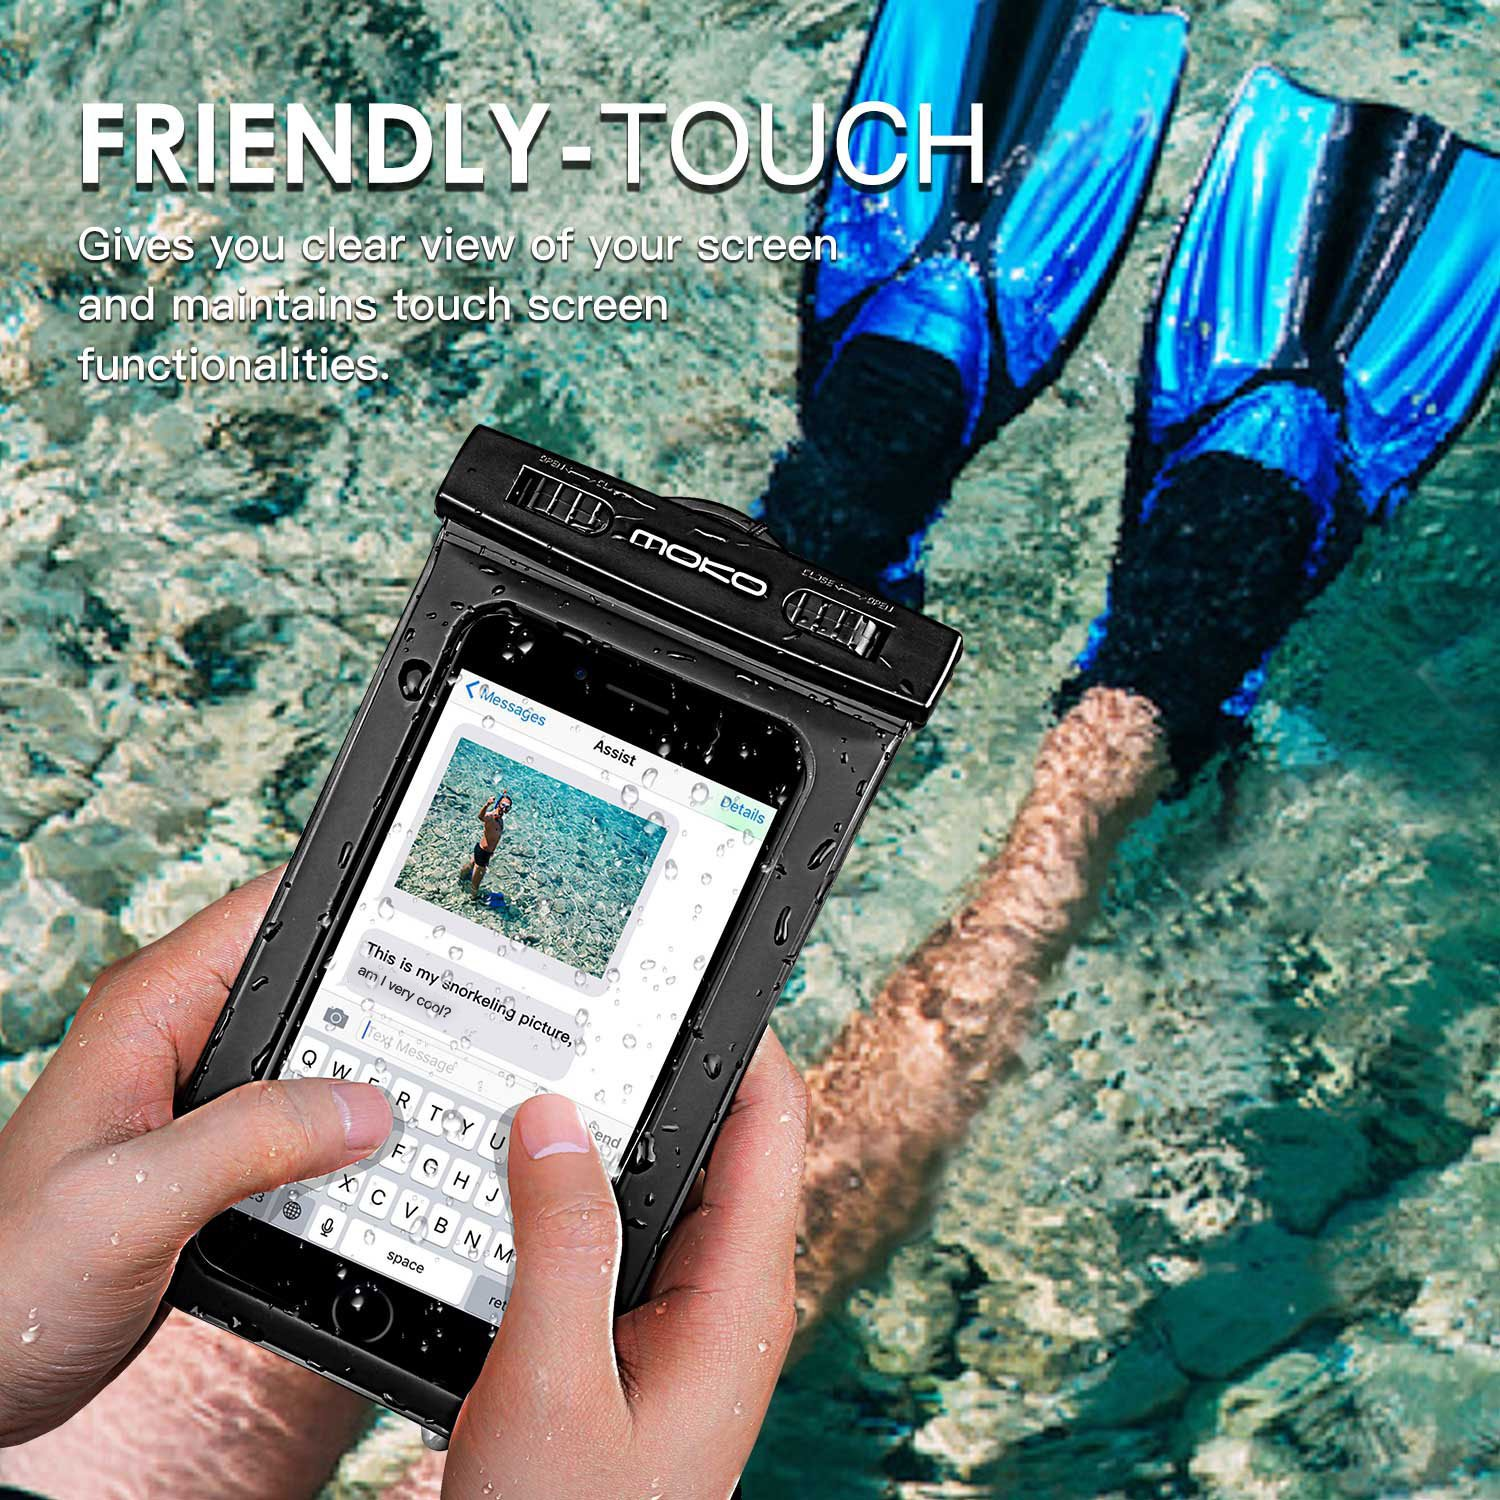 MoKo Waterproof Phone Pouch, Underwater Waterproof Cellphone Case Dry Bag with Lanyard Armband Compatible with iPhone X/Xs/Xr/Xs Max, 8/7/6s Plus, Samsung Galaxy S10/S9/S8 Plus, S10 e, S7 Edge, Black by MoKo (Image #4)